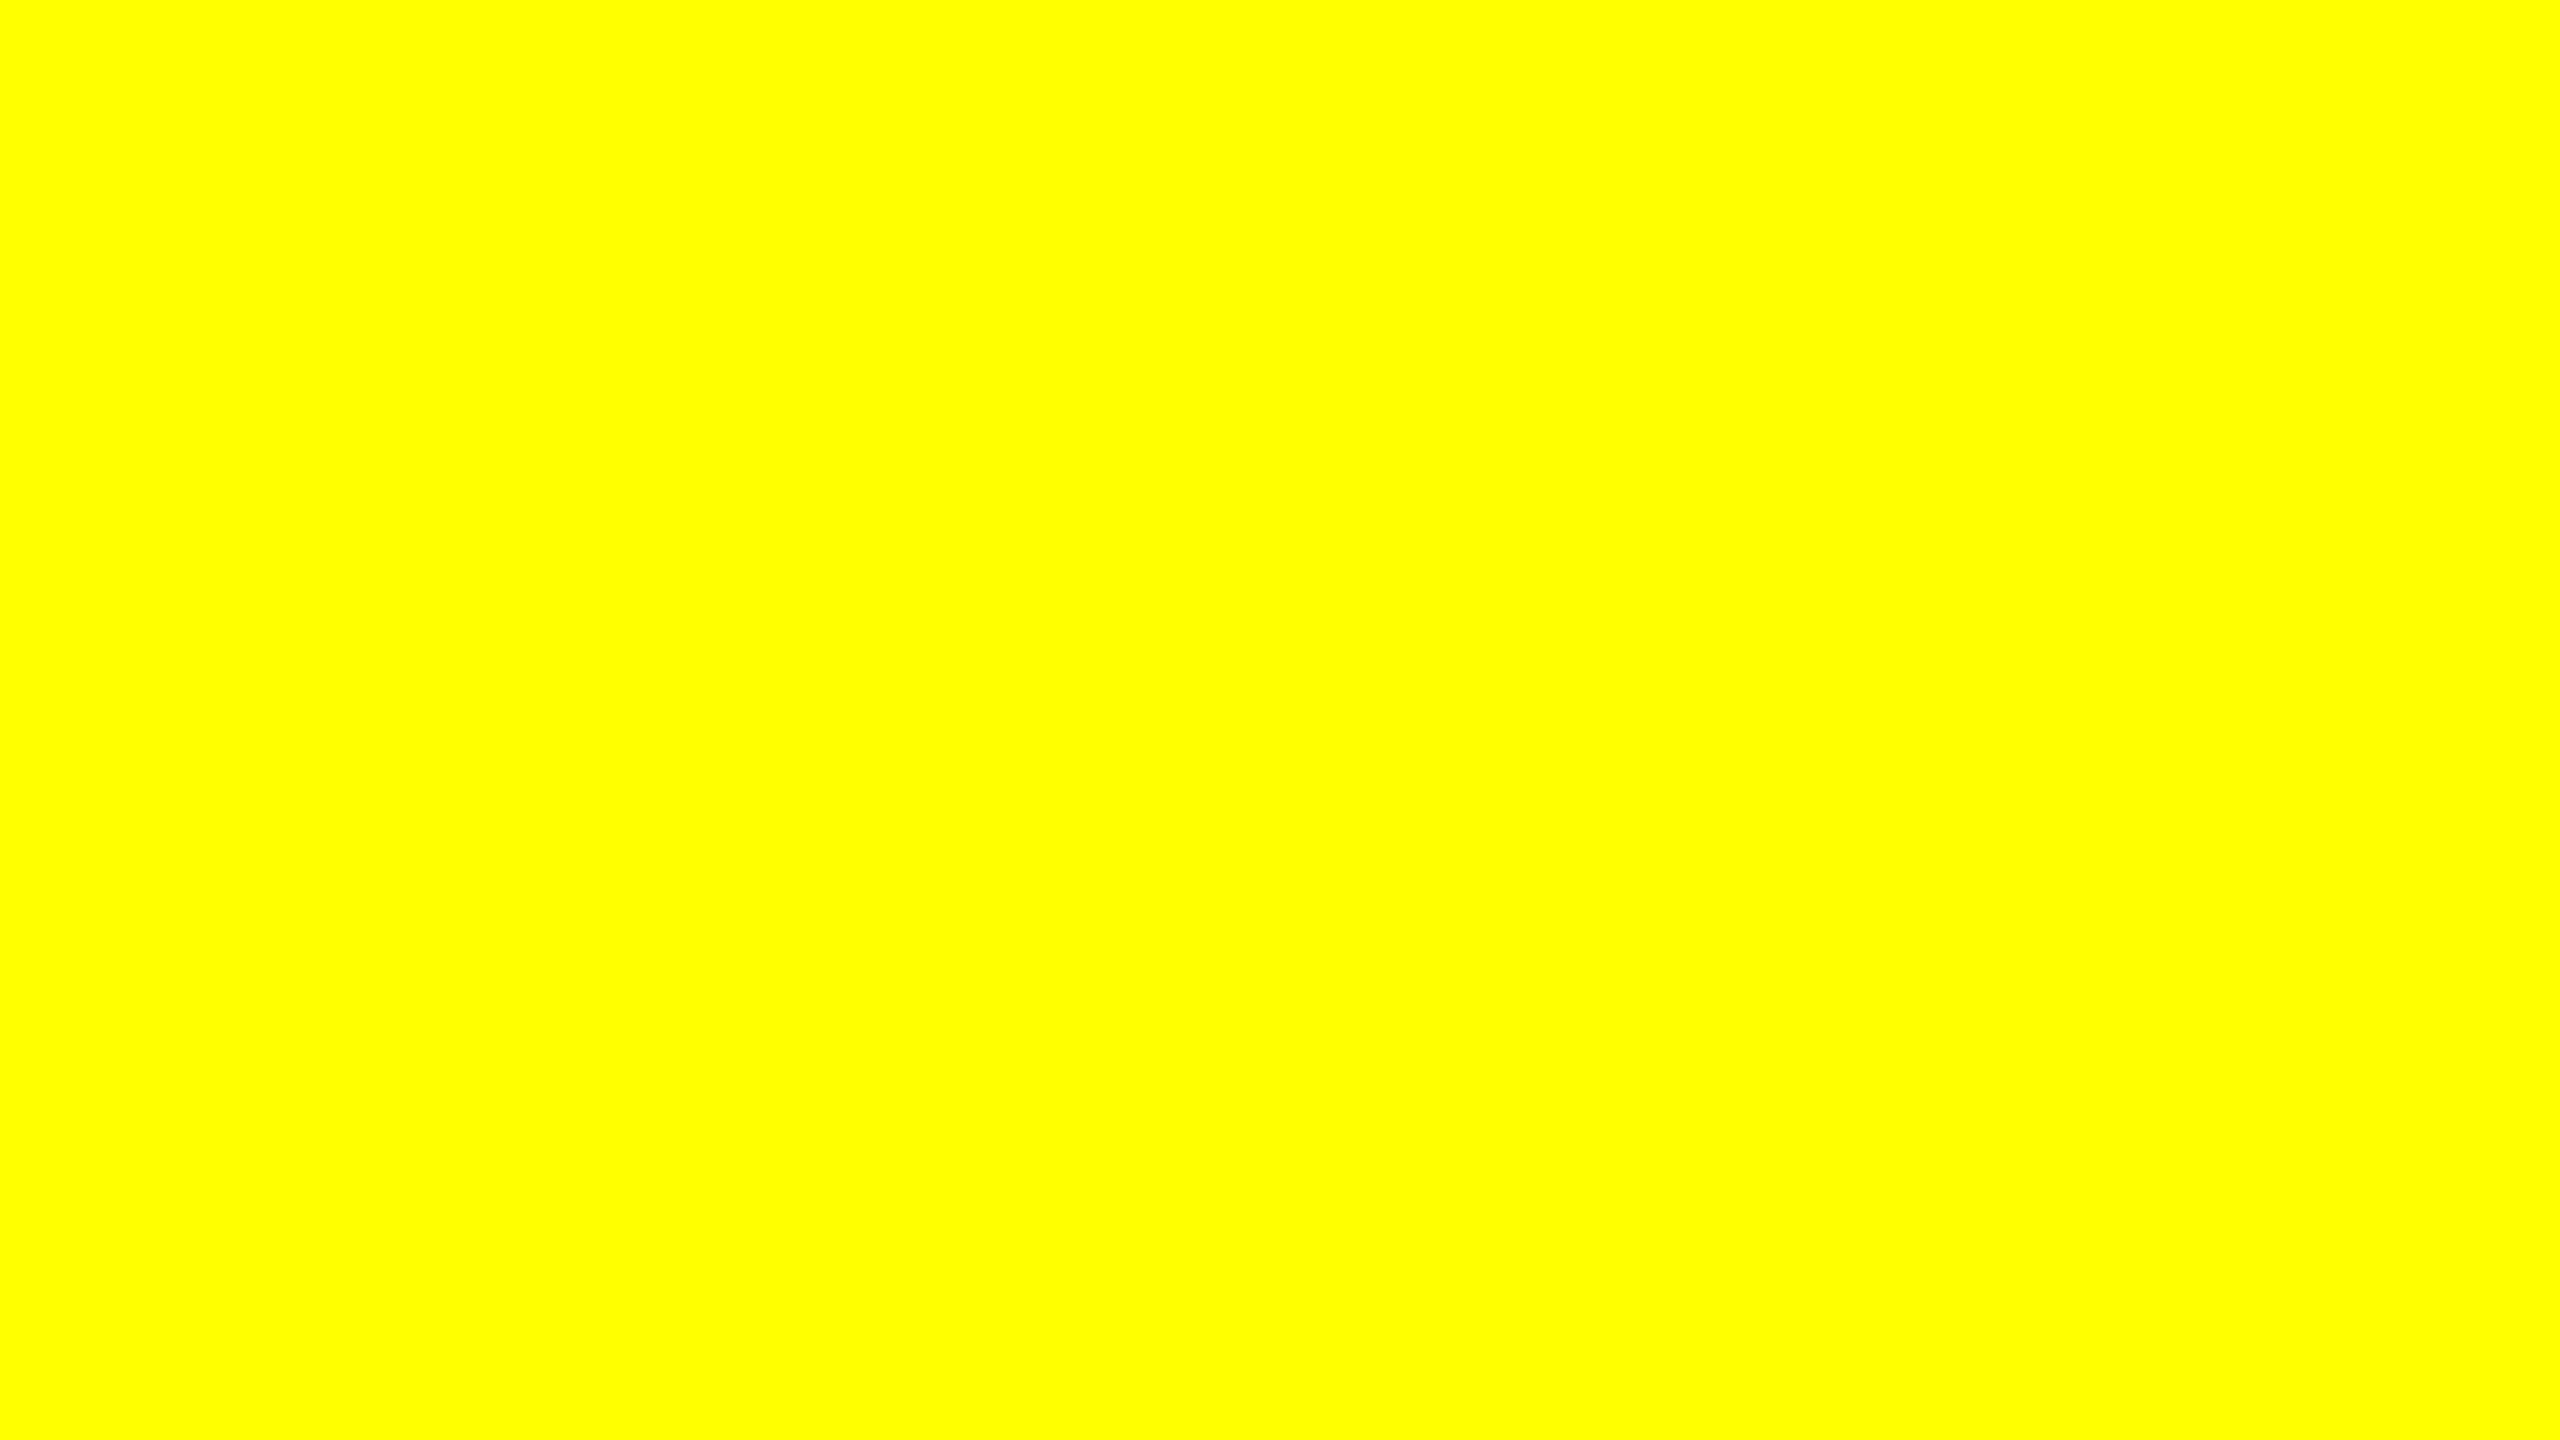 Hd 3d Wallpaper Mobile9 Cool Yellow Backgrounds 55 Images